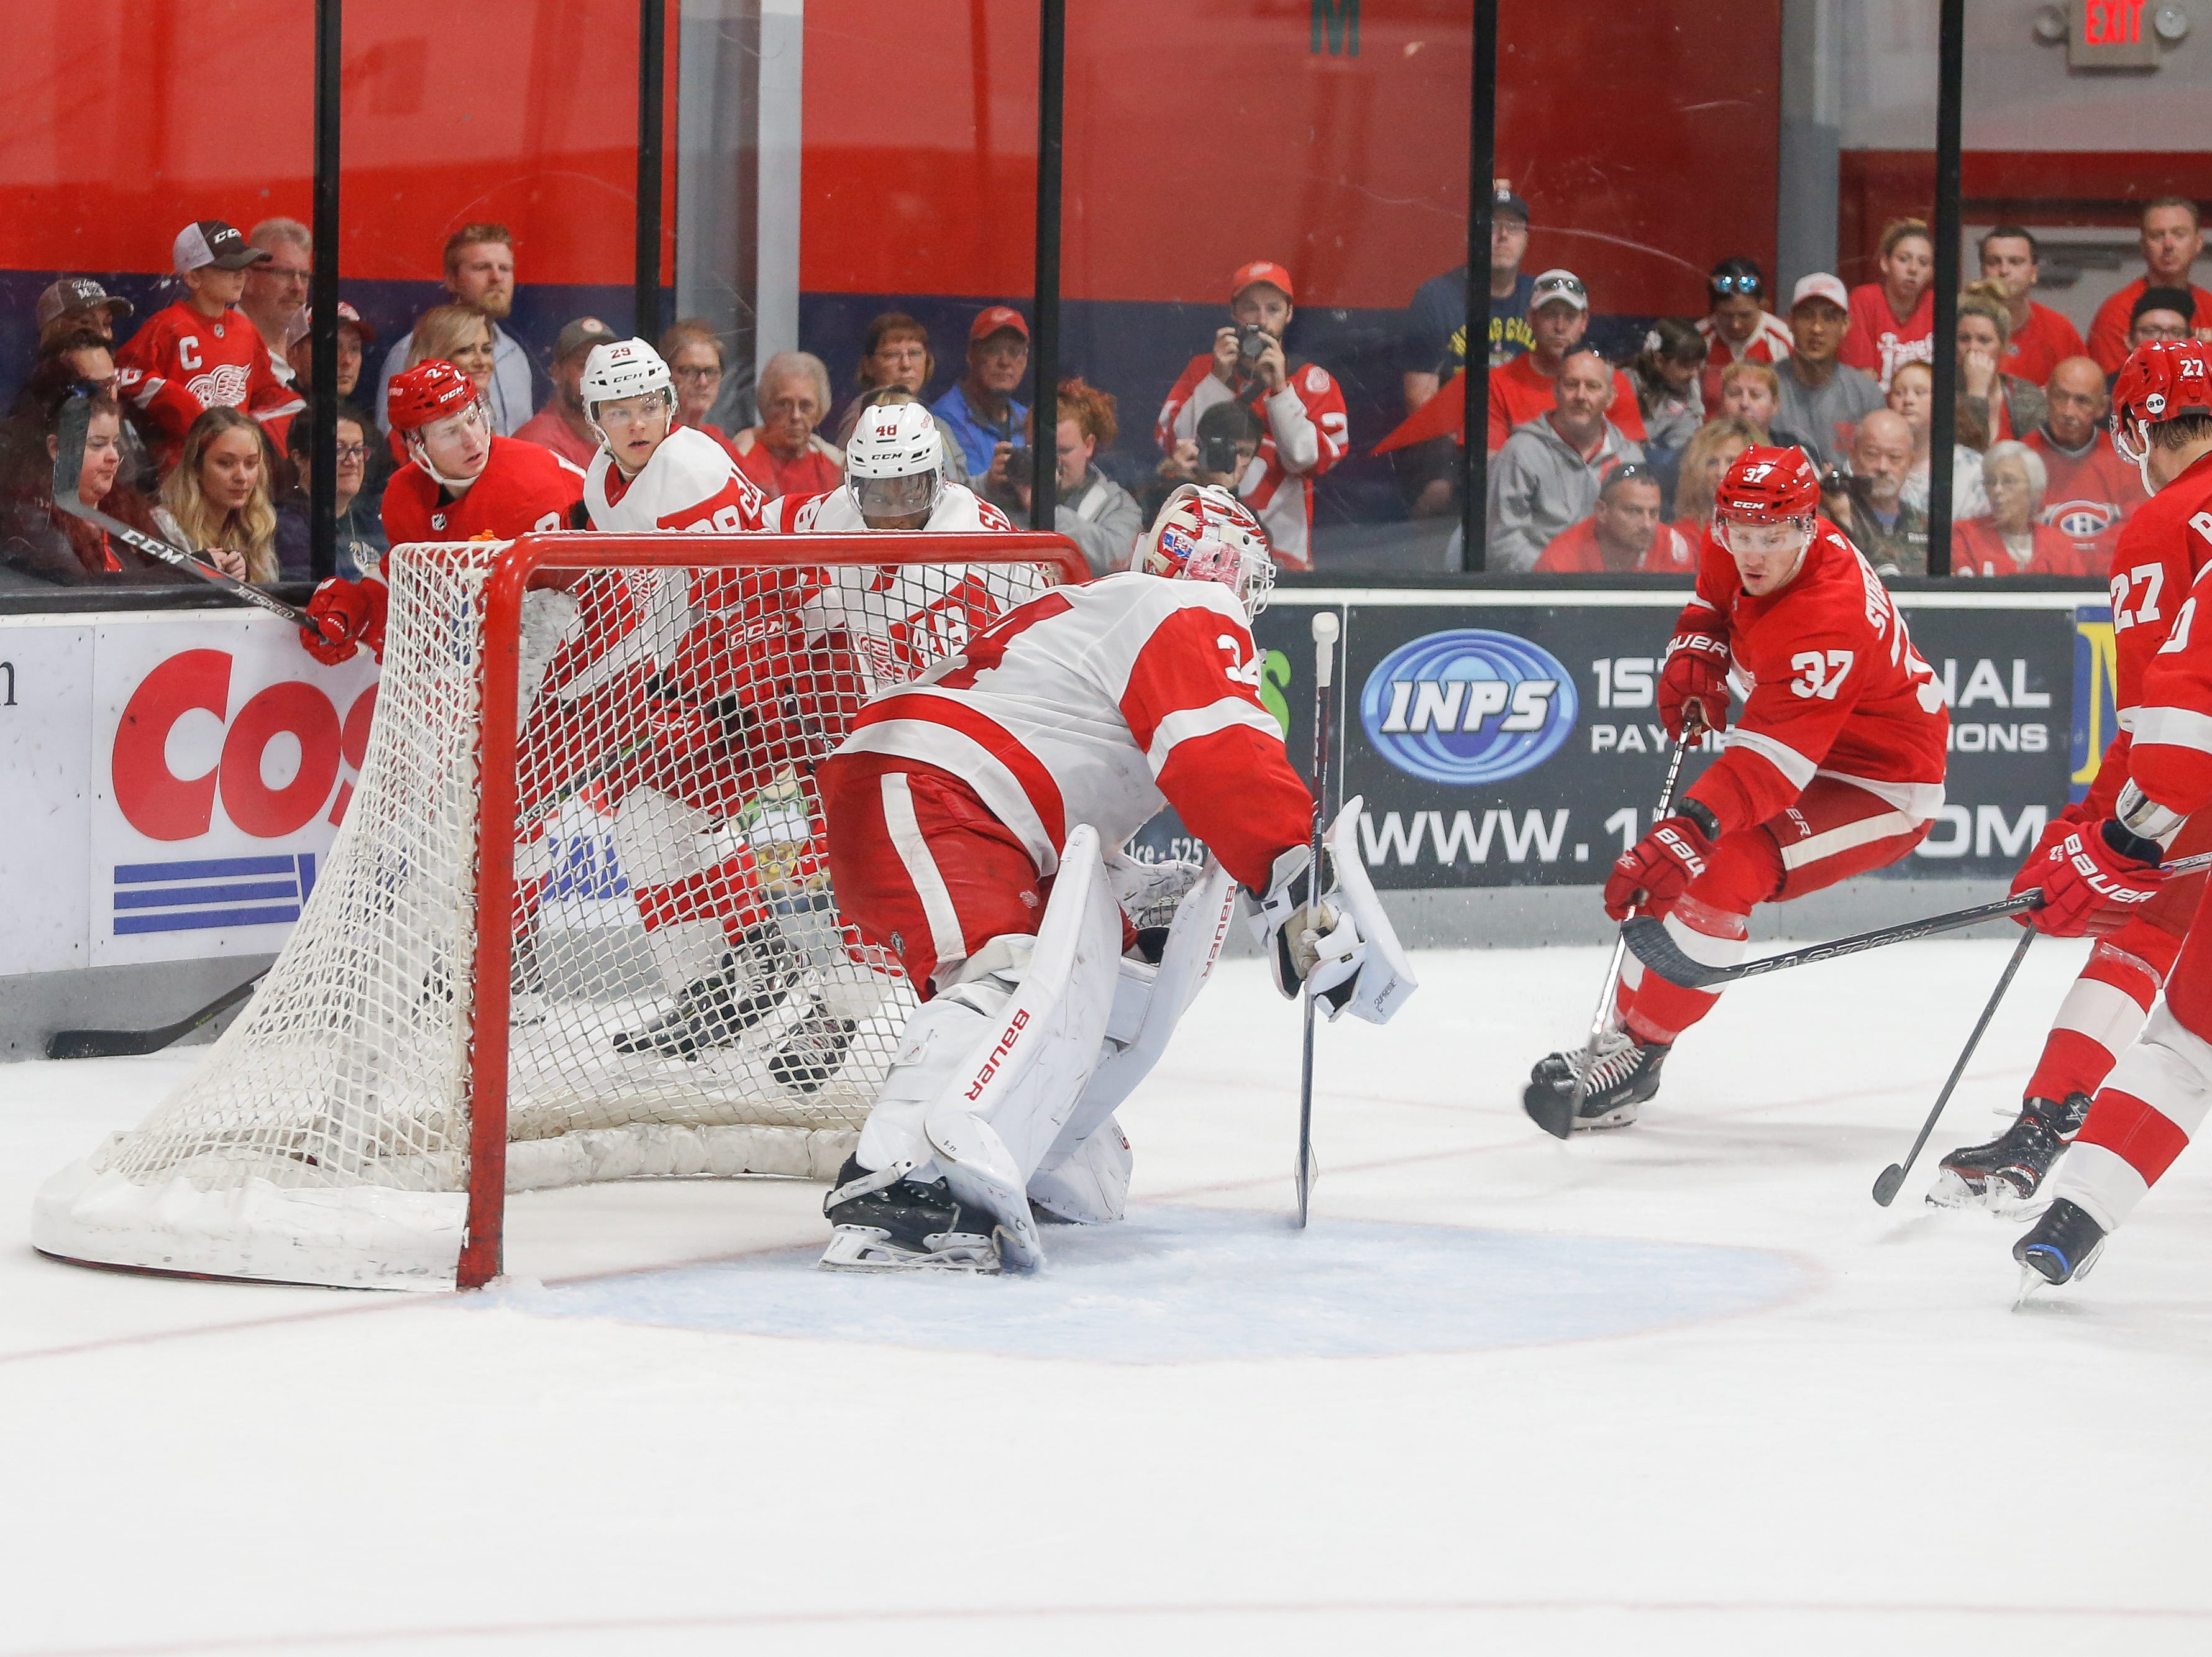 Evgeny Svechnikov moves in on goaltender Patrik Rybar as other Wings, red and white, watch.